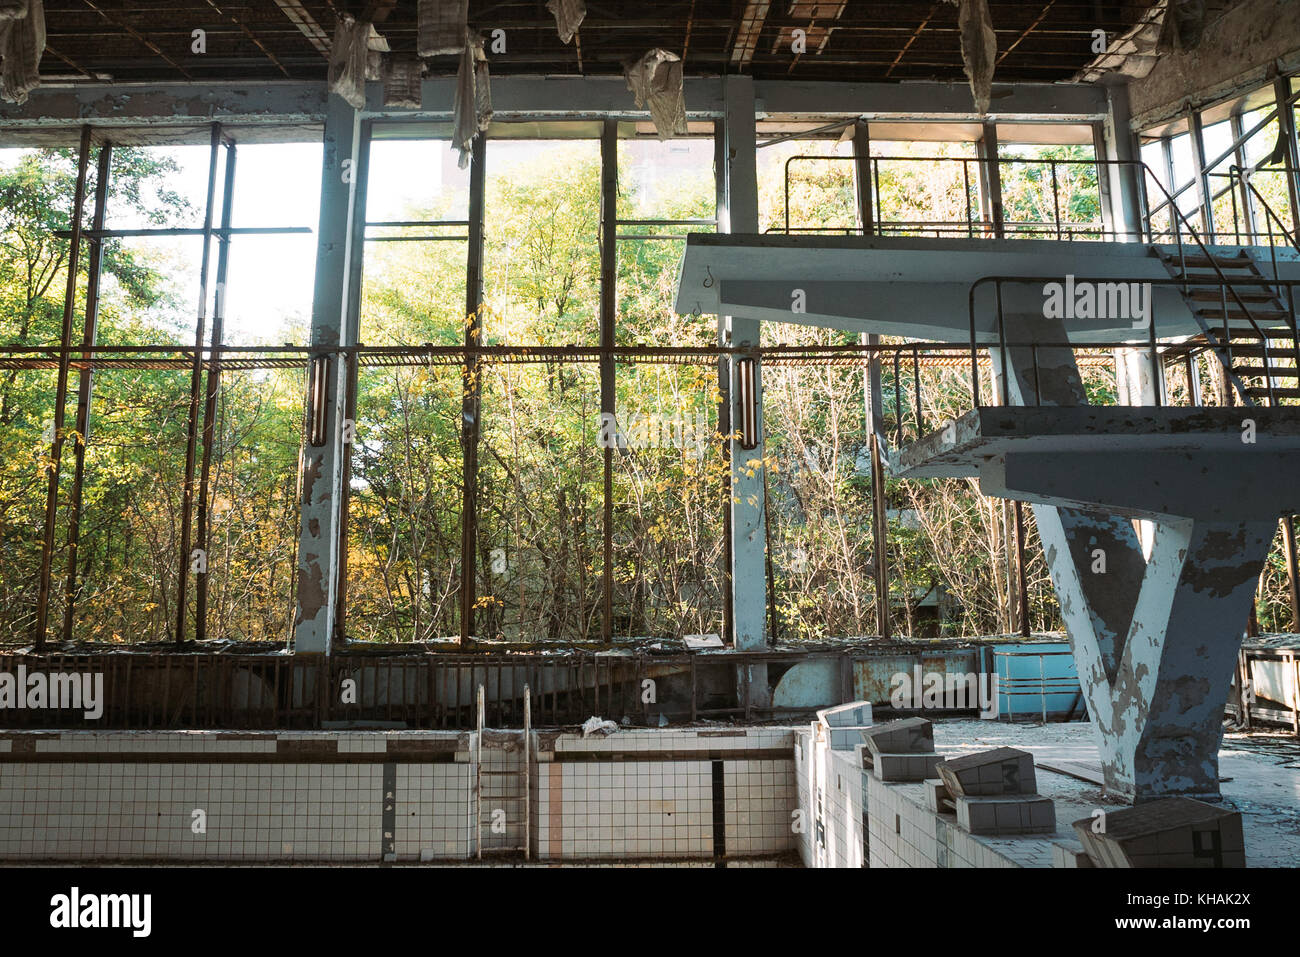 The old swimming pool hall in Pripyat, Ukraine, close to the location of the Chernobyl disaster - Stock Image